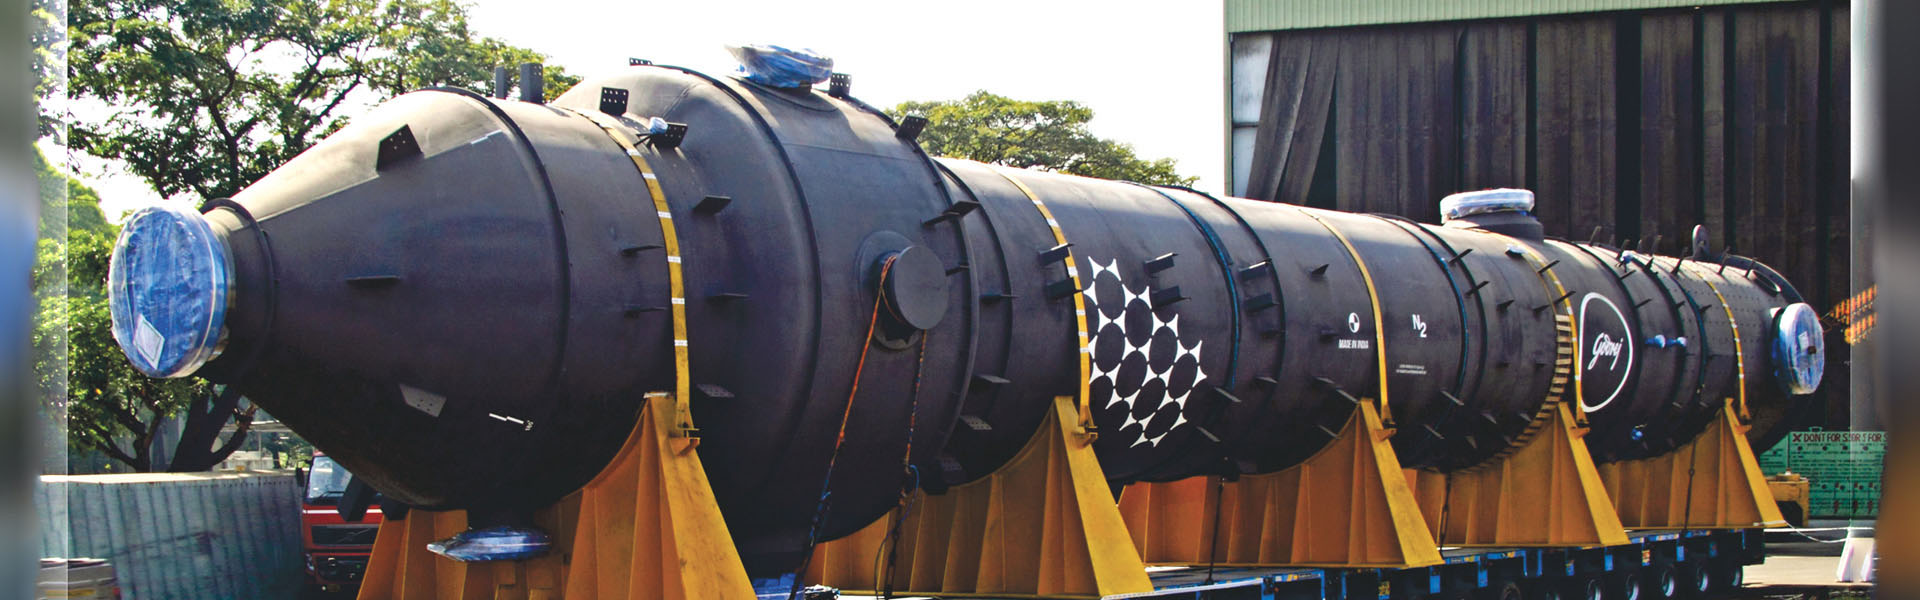 Cycle-Gas-Heat-Exchanger